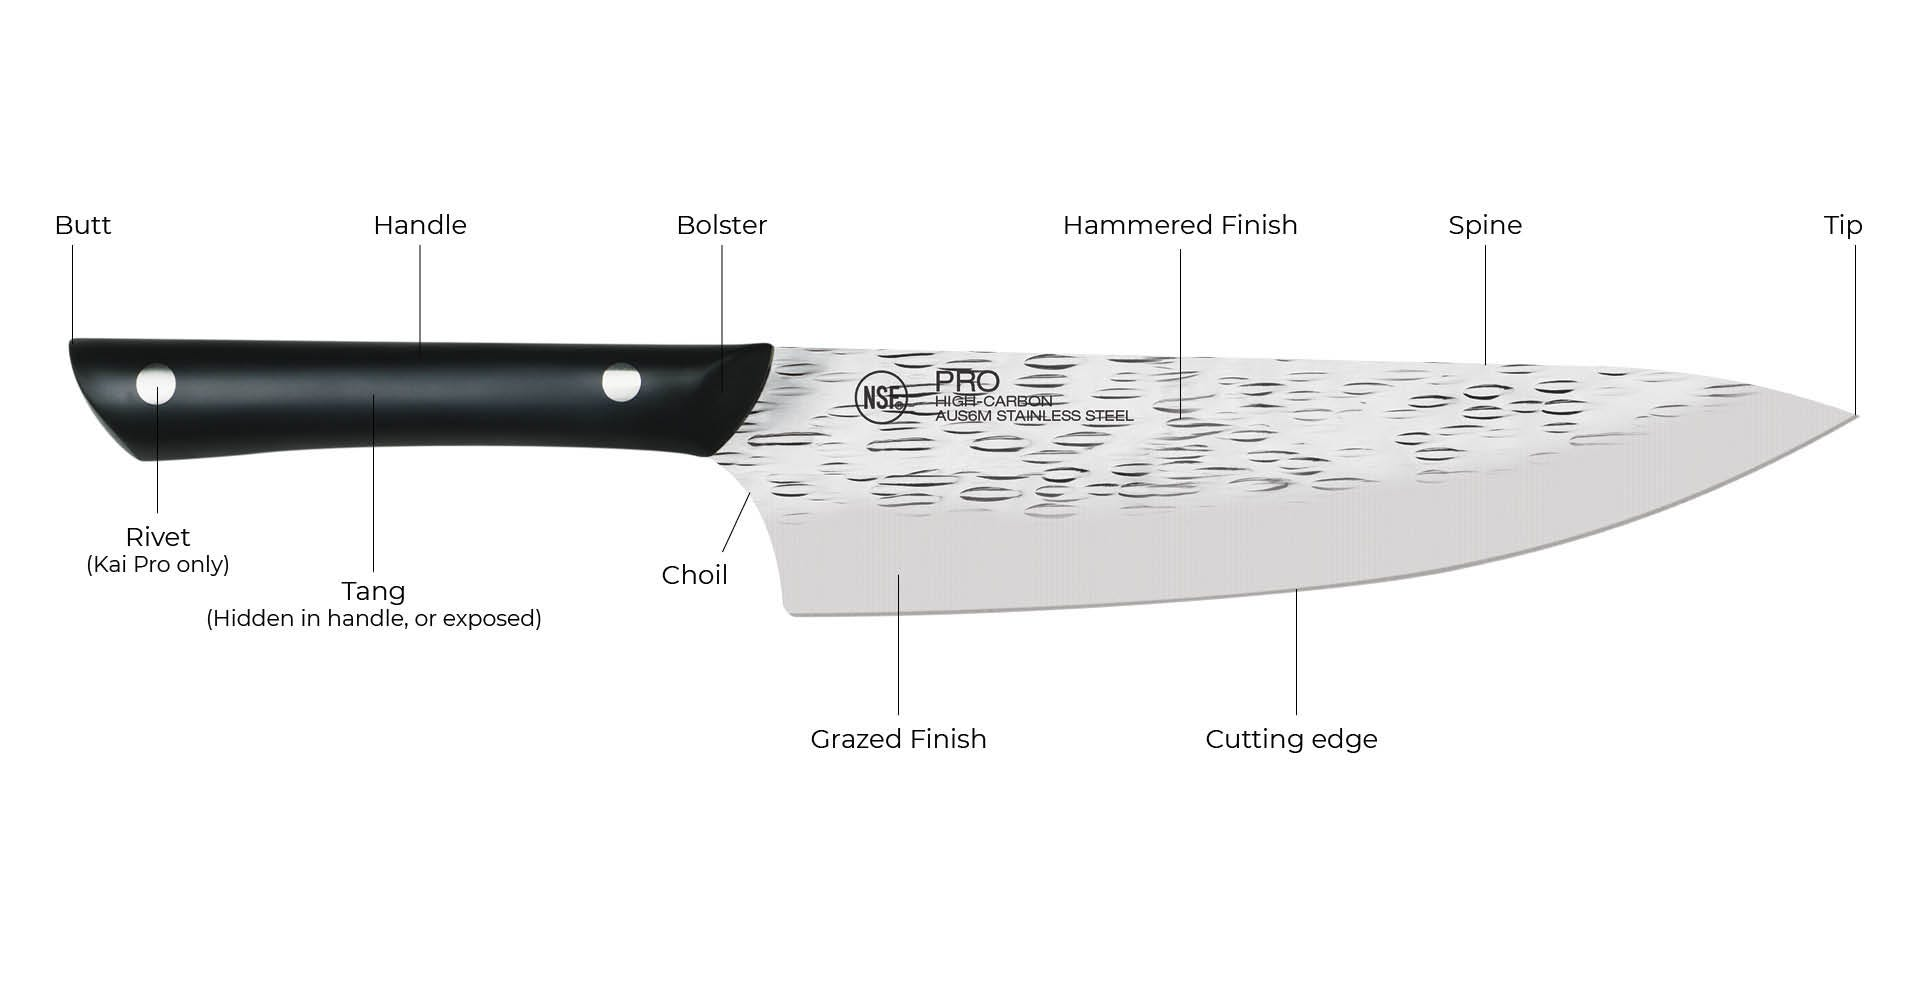 Knife anatomy front view diagram